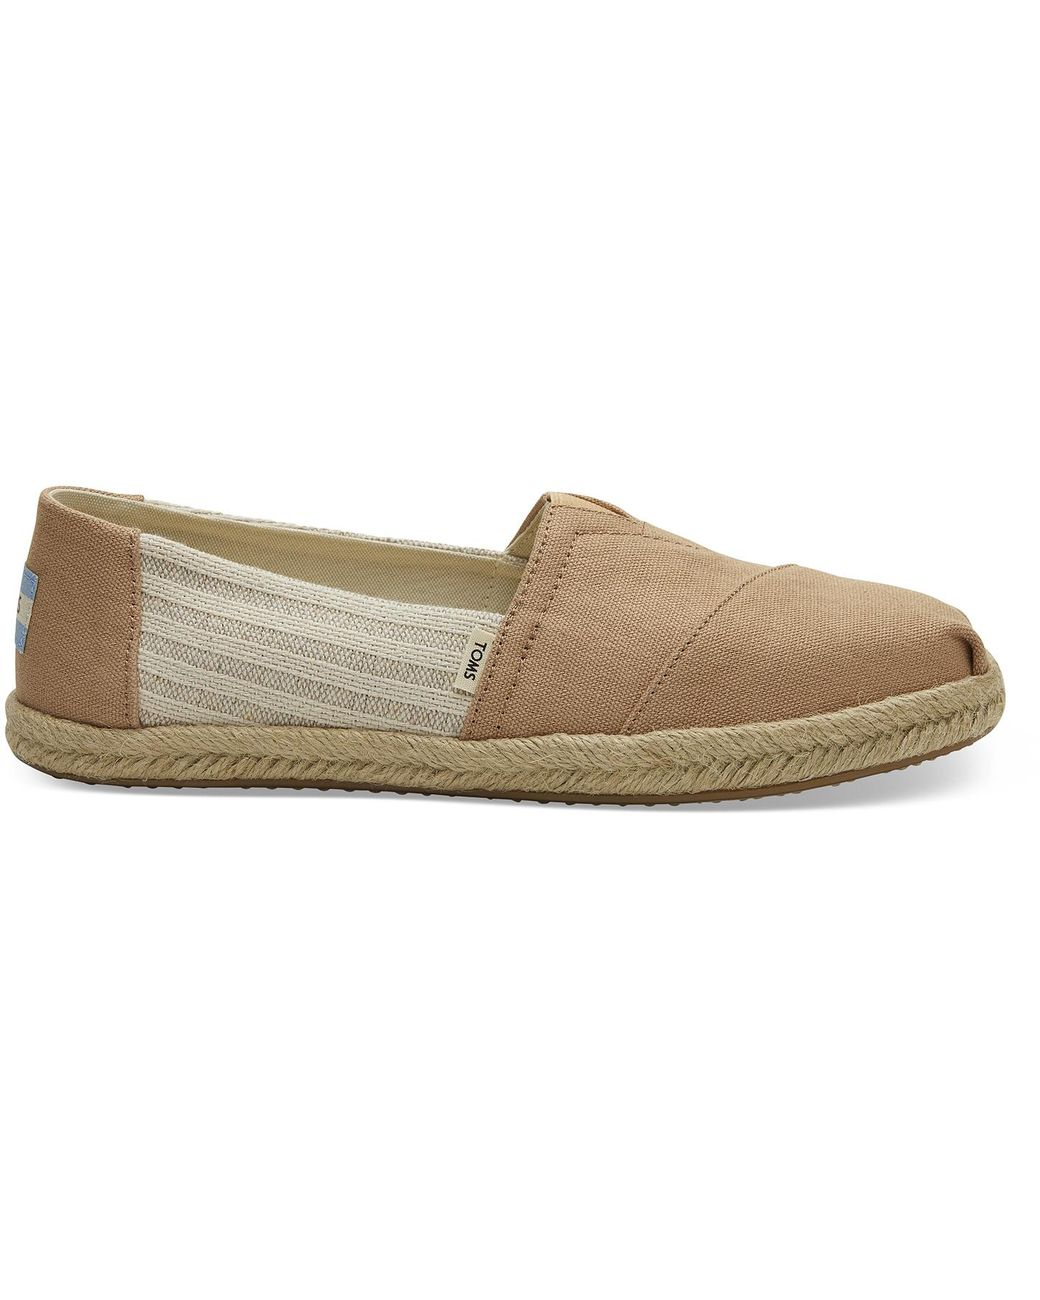 TOMS Toffee Canvas Striped Women's